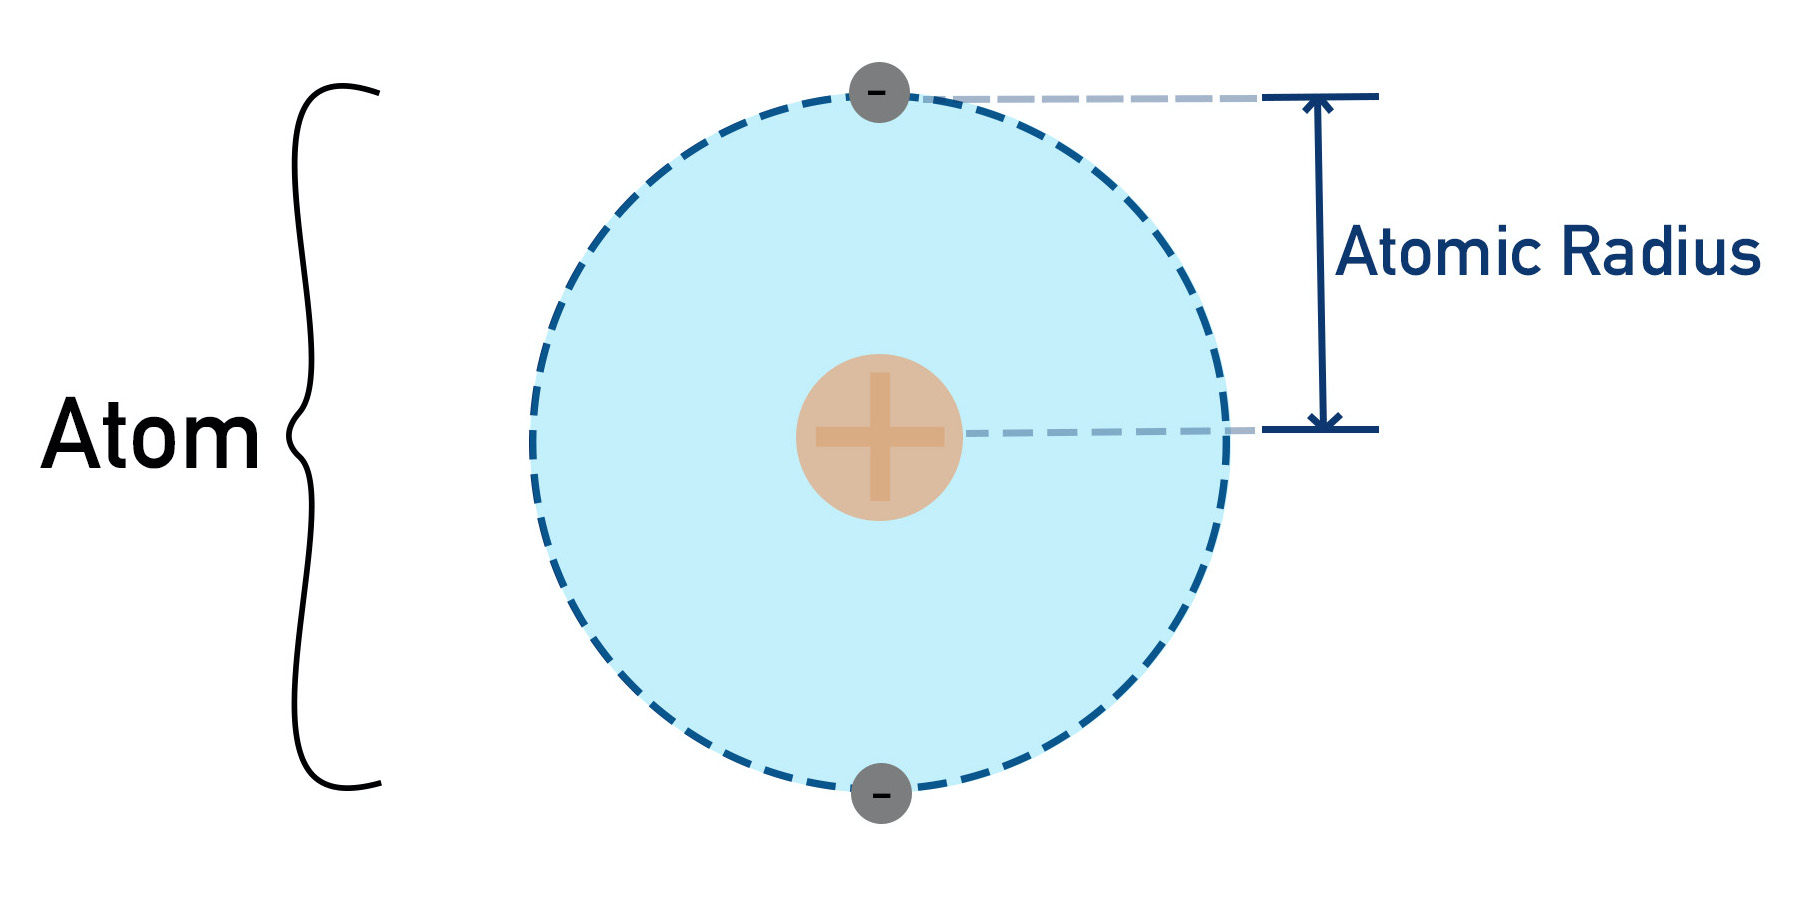 atomic radius of simple atom from nucleus to outer electrons